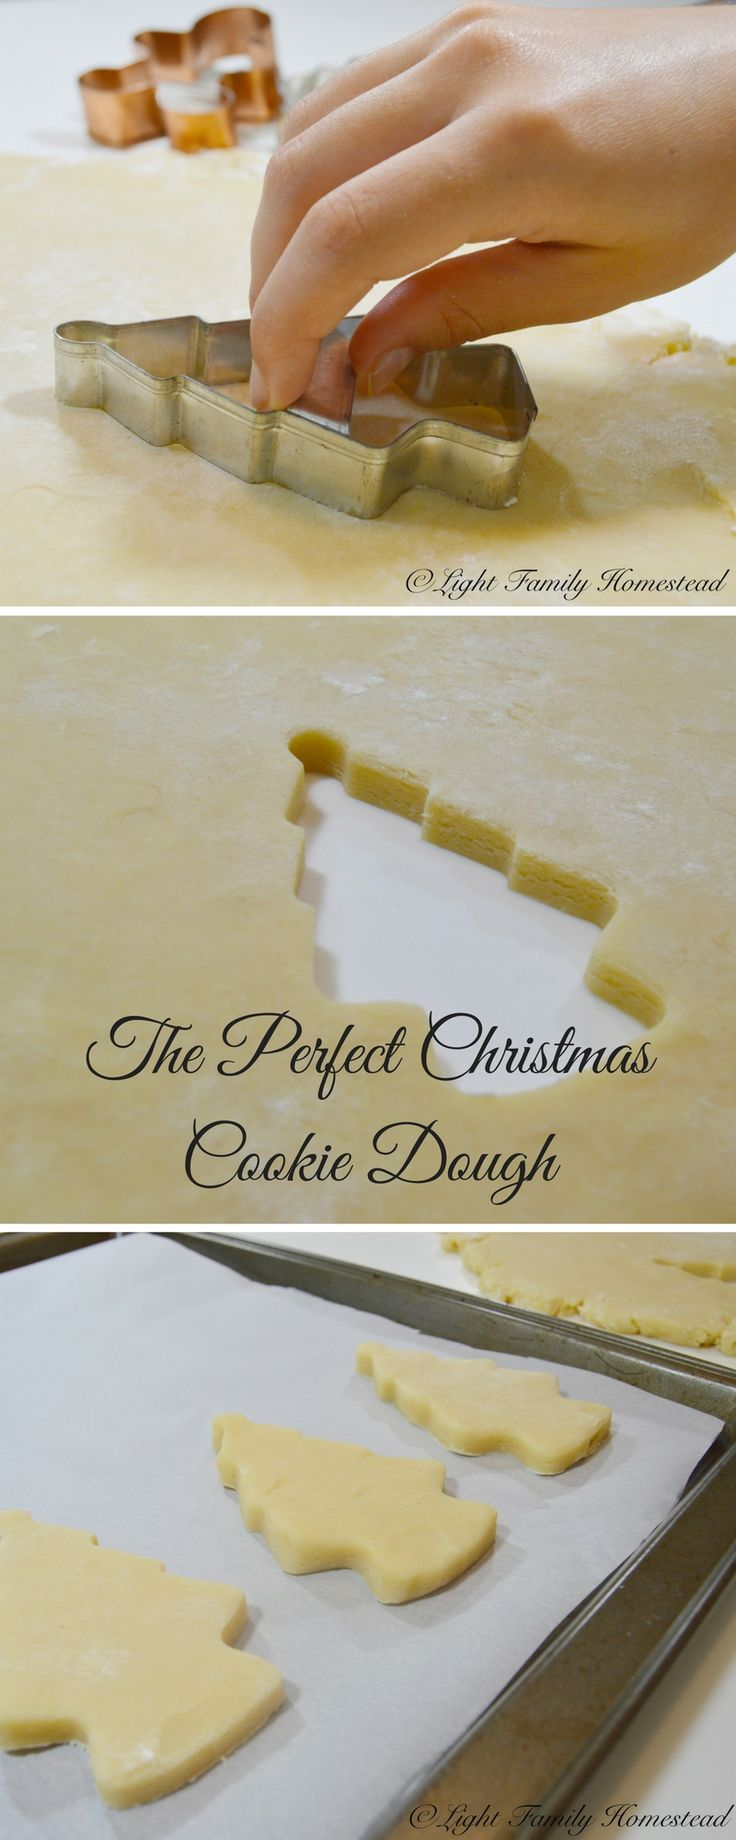 The Perfect Christmas Cookie Dough-This is sugar cookie recipe the ideal cookie dough when it comes to decorating cookies. Check it out at www.lightfamilyhomestead.com